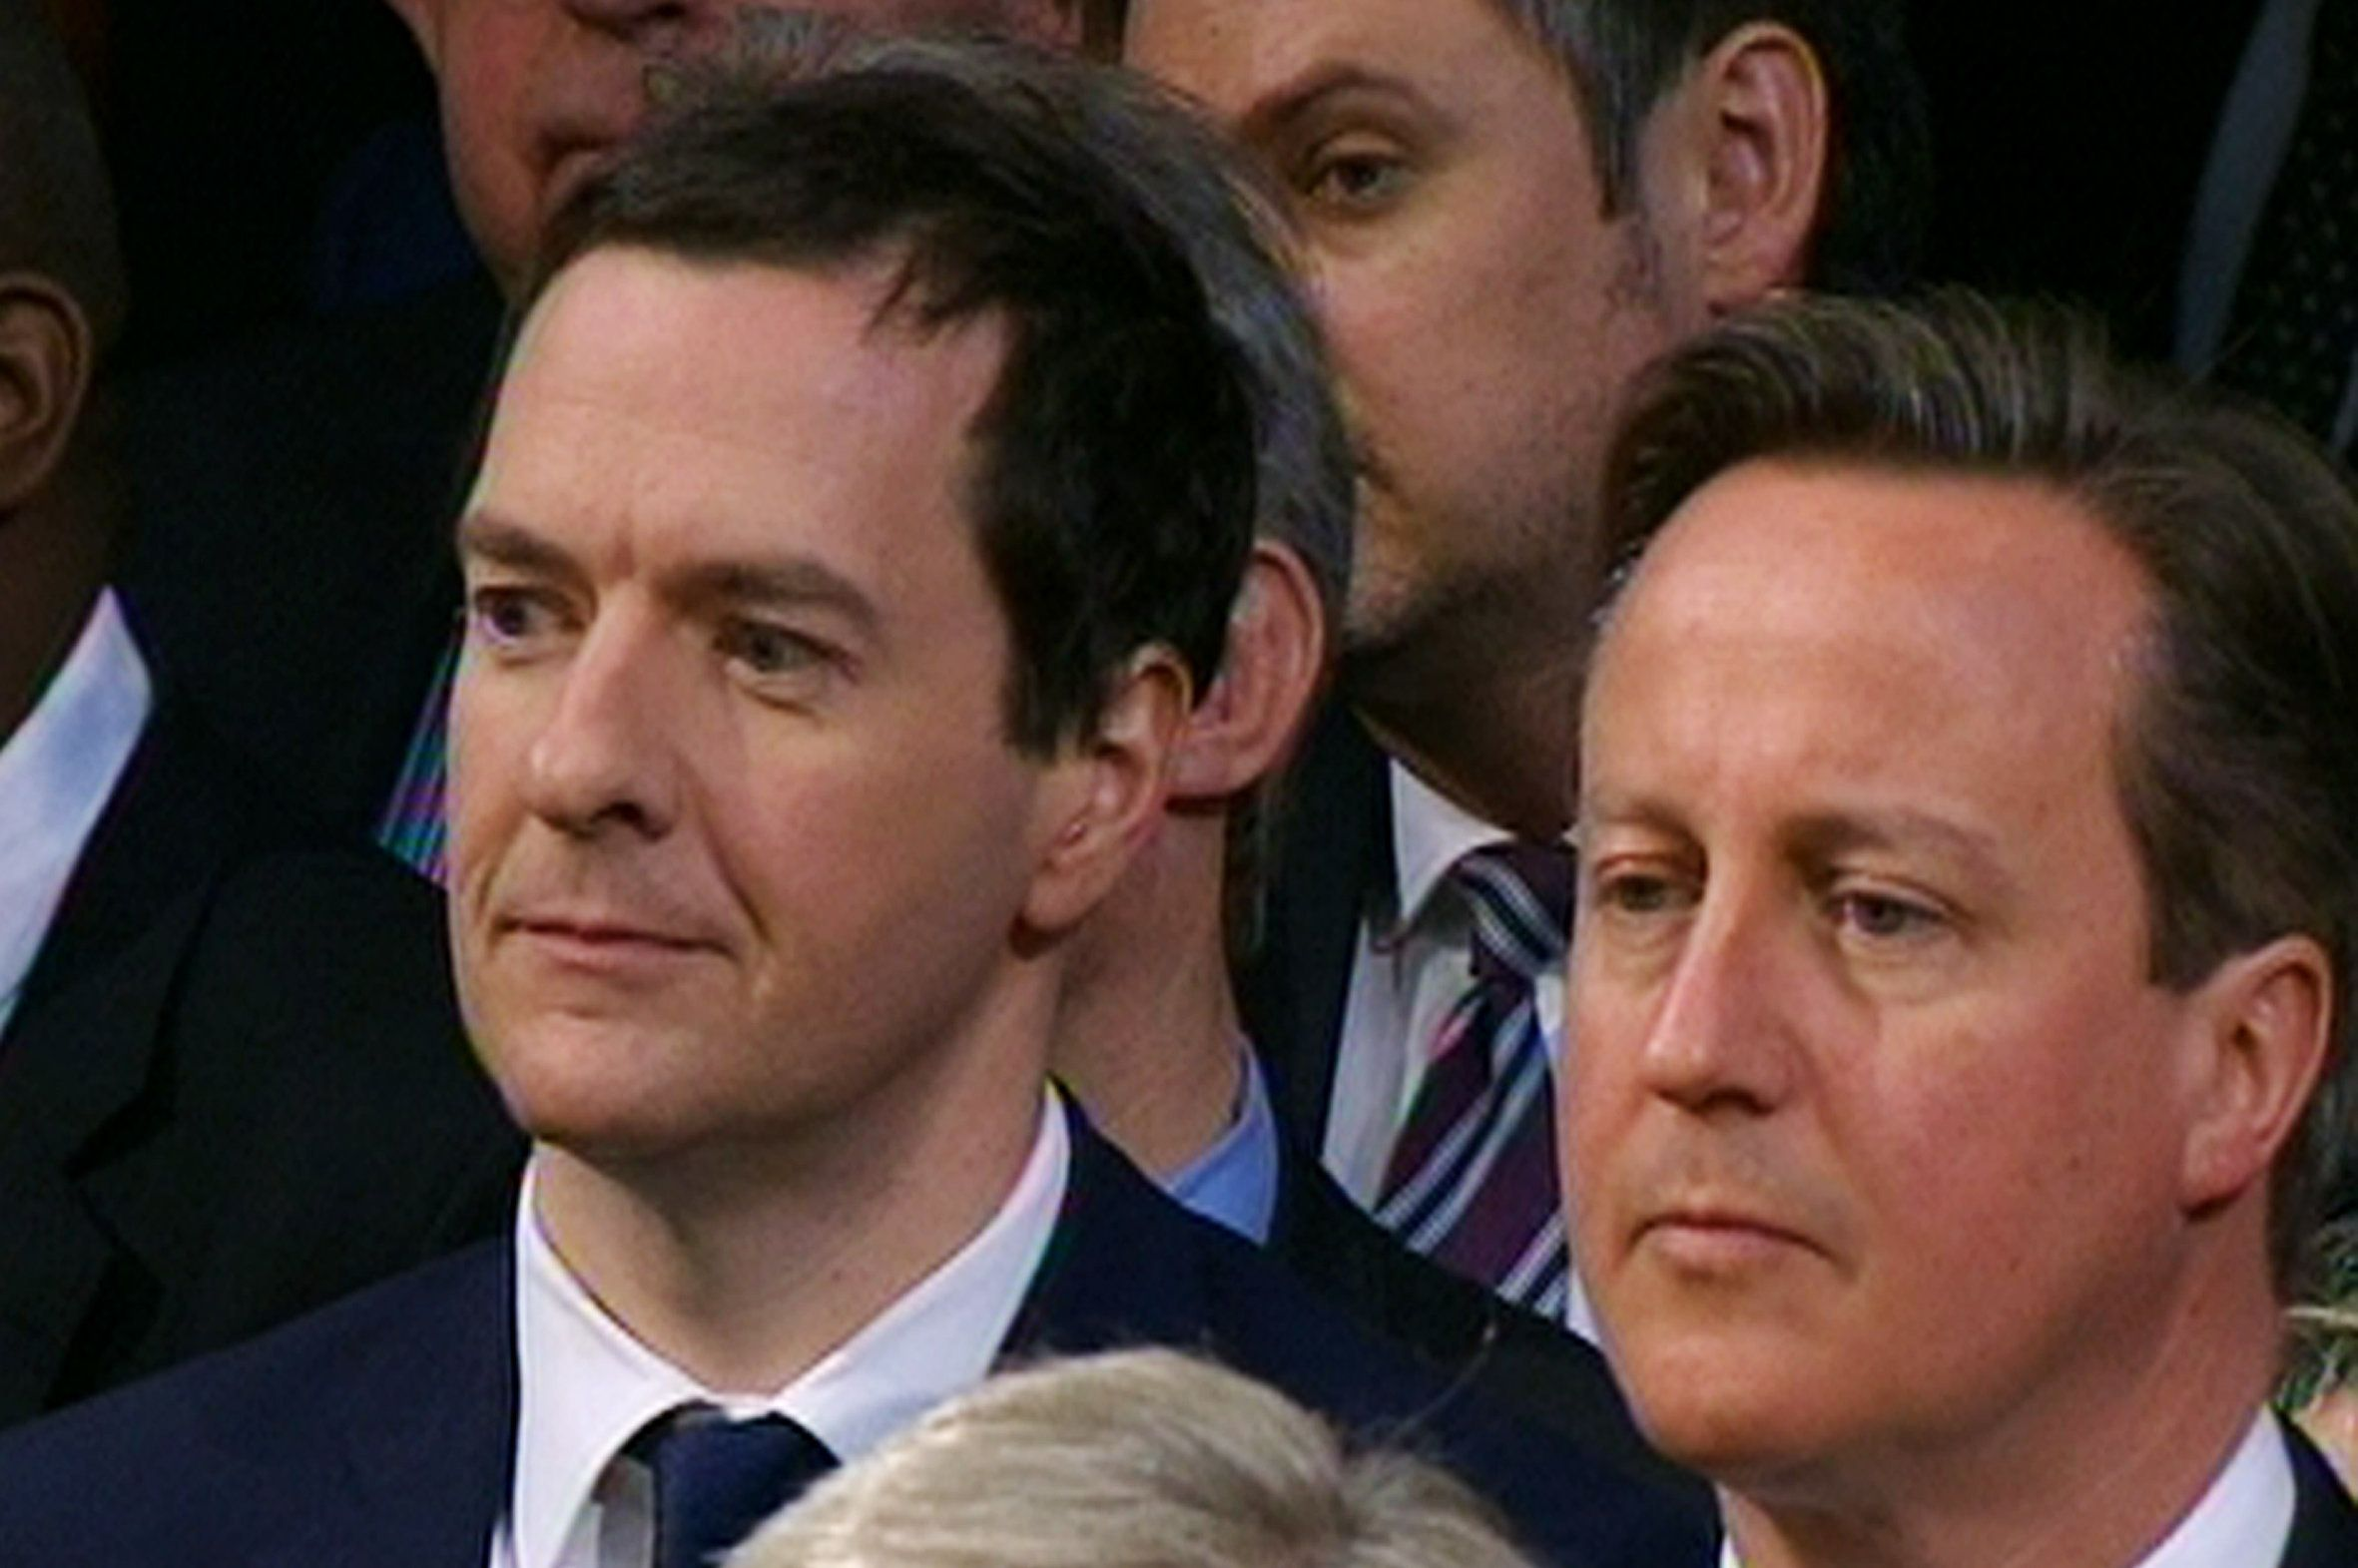 David Cameron And George Osborne Condemned After Gloating Over